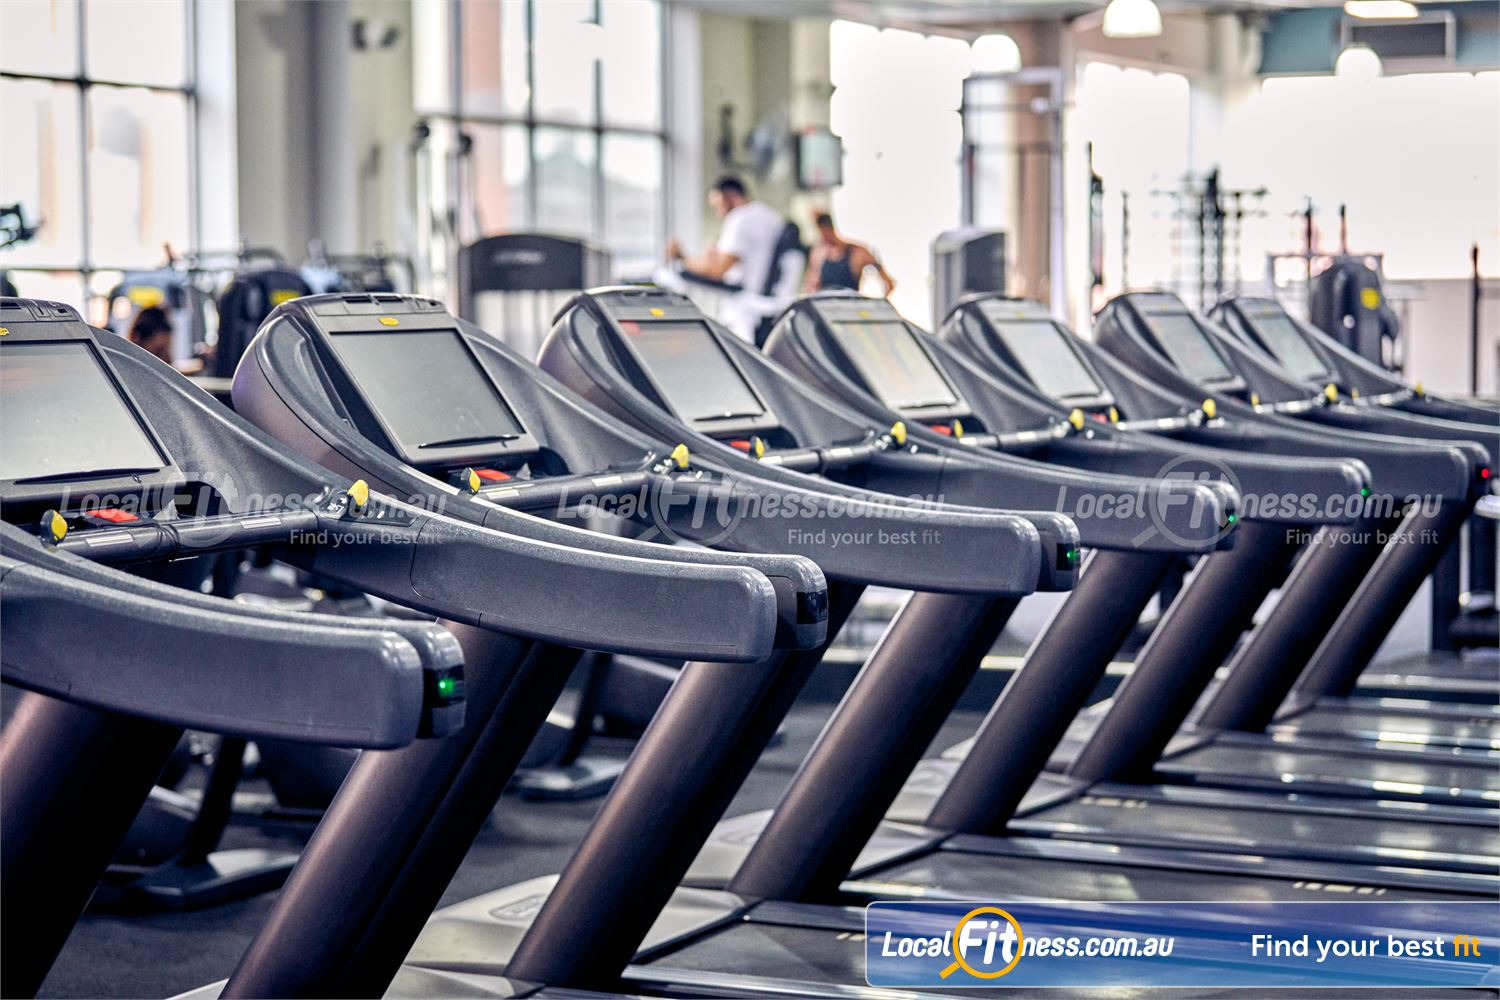 Fitness First Platinum Near Toorak Rows of state of the art cardio so you don't have to wait.